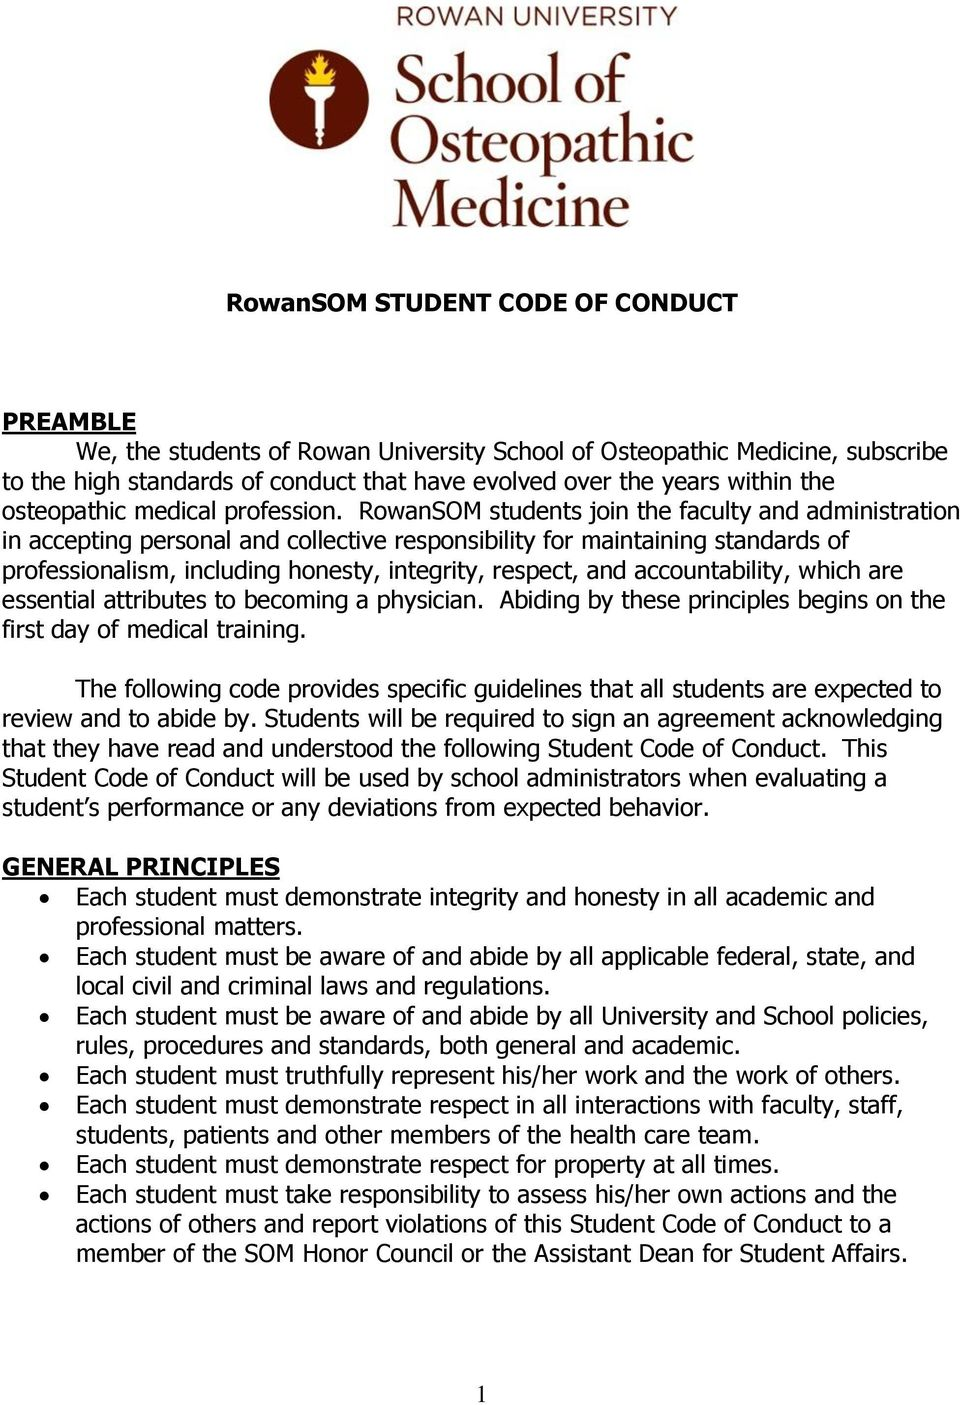 RowanSOM students join the faculty and administration in accepting personal and collective responsibility for maintaining standards of professionalism, including honesty, integrity, respect, and